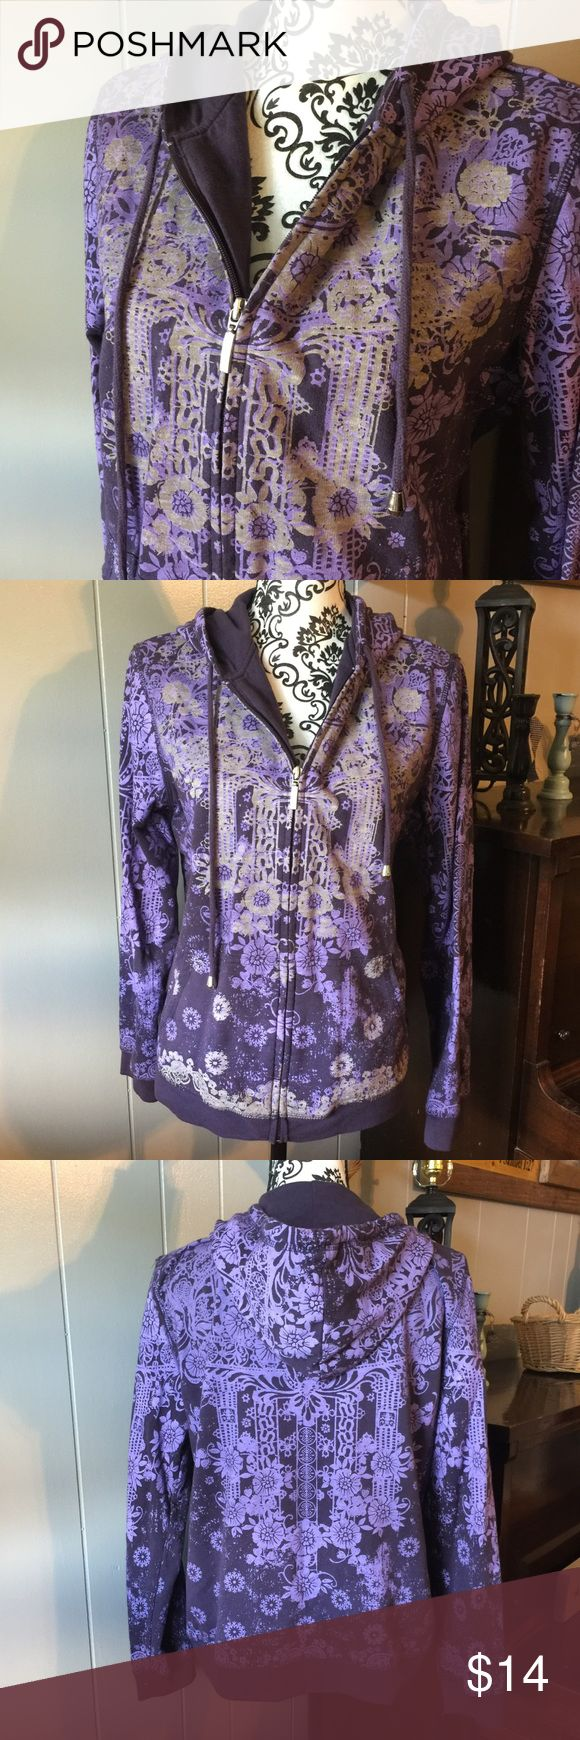 Women's Catos size large purple zip up hoodie Please feel free to ask any questions or make an offer, and as always THANK YOU for shopping my posh closet! Xoxo -Tish Cato Tops Sweatshirts & Hoodies